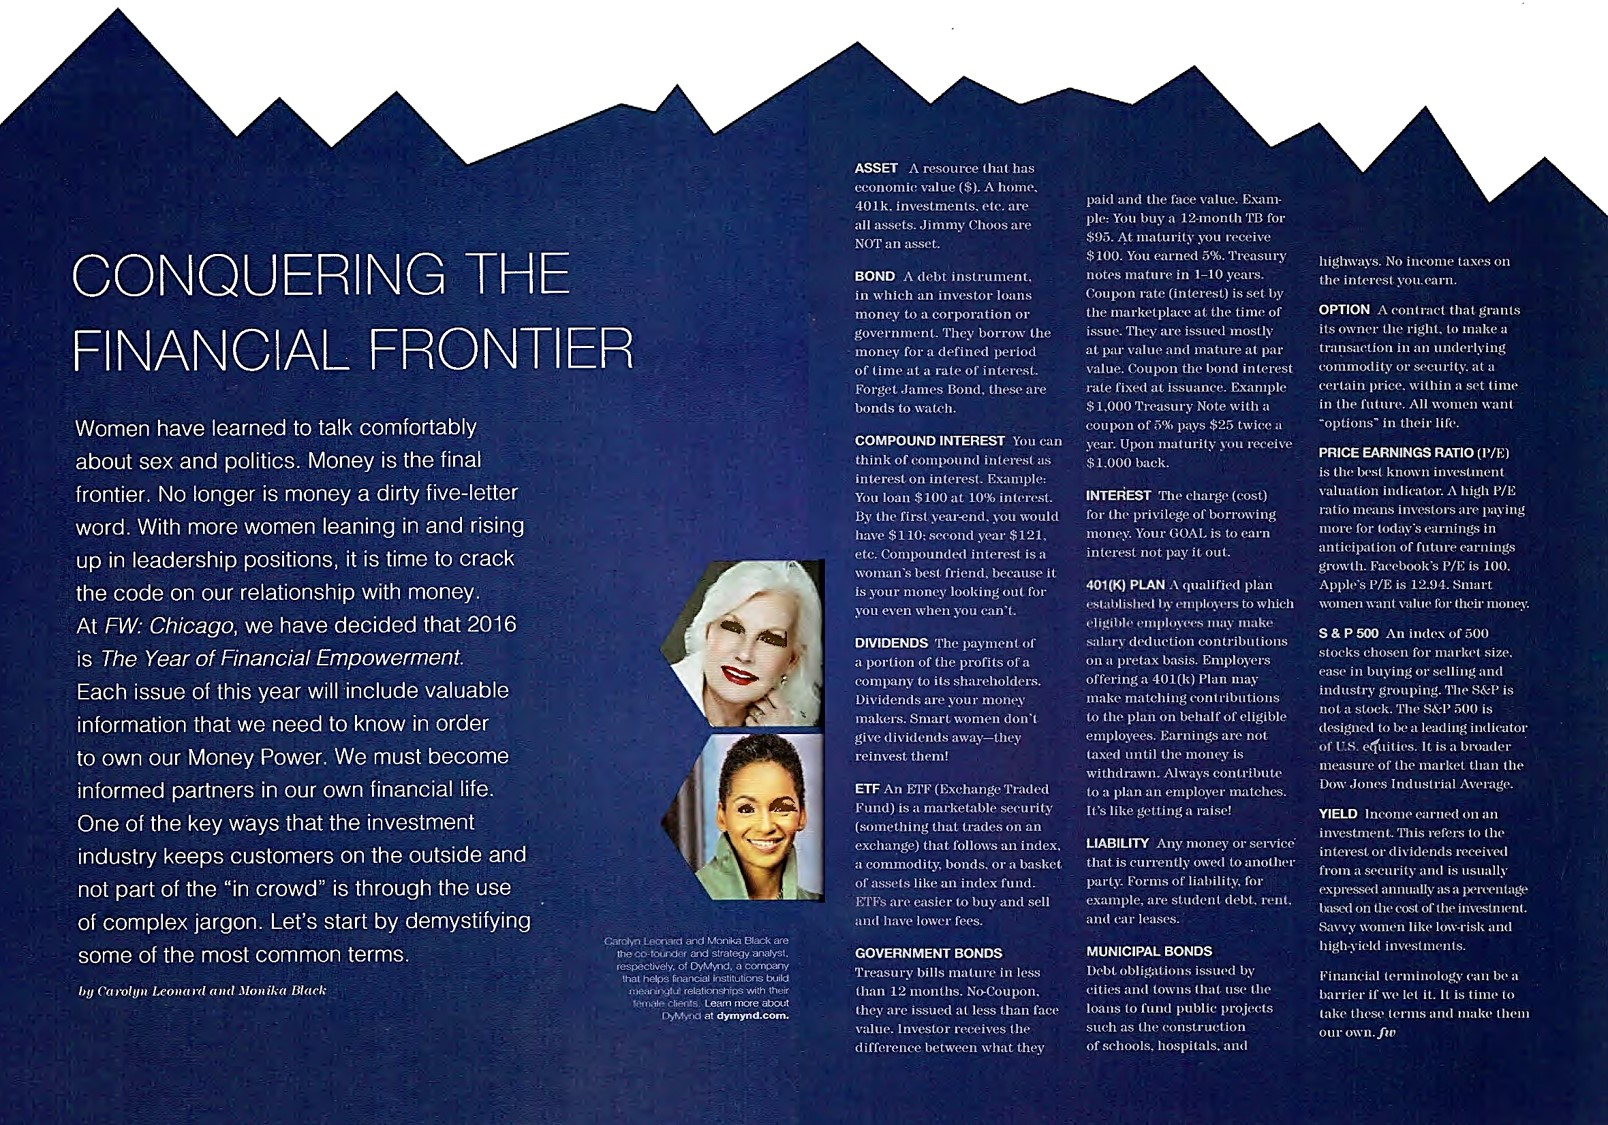 Conquering The Financial Frontier_ FW Chicago_ 2016